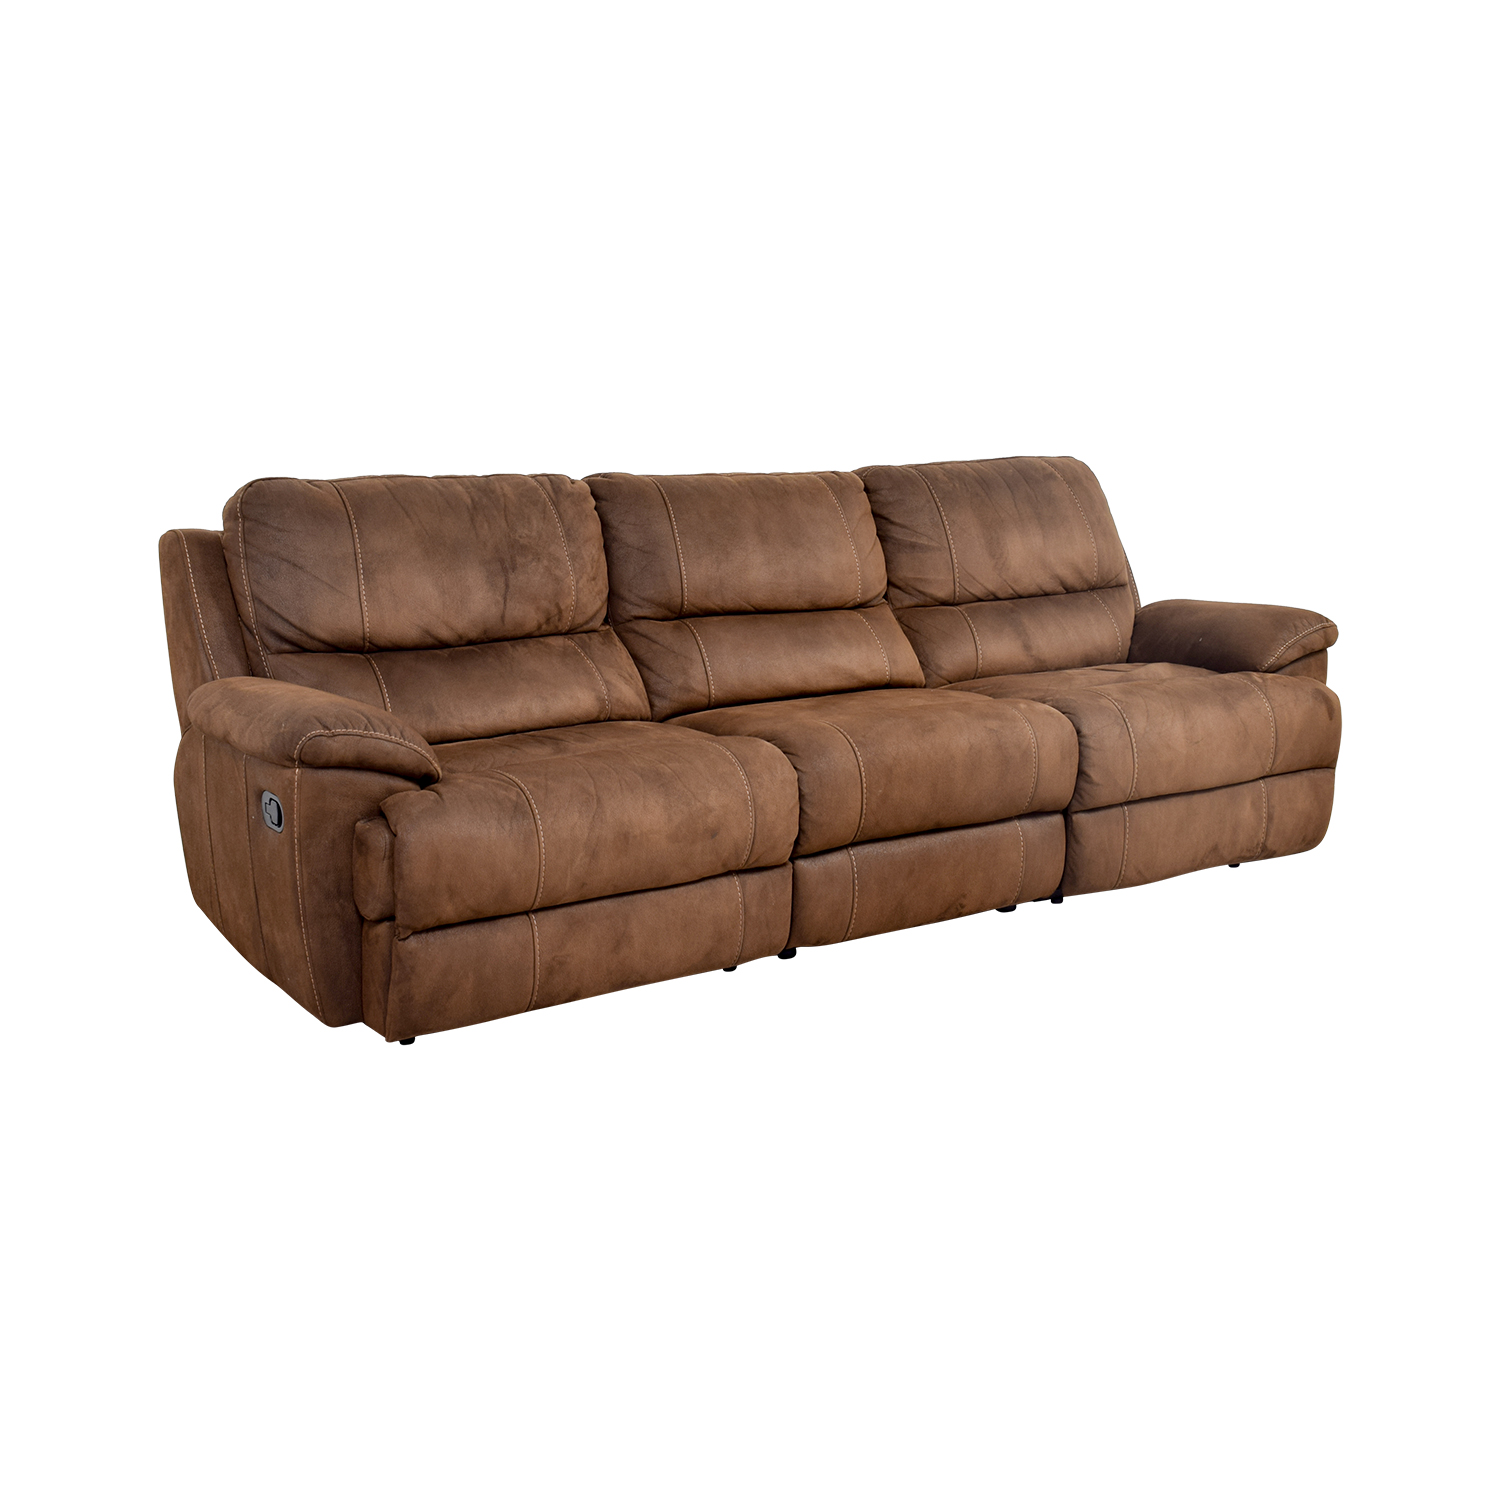 88 Off Havertys Haverty S Reclining Sofa Sofas